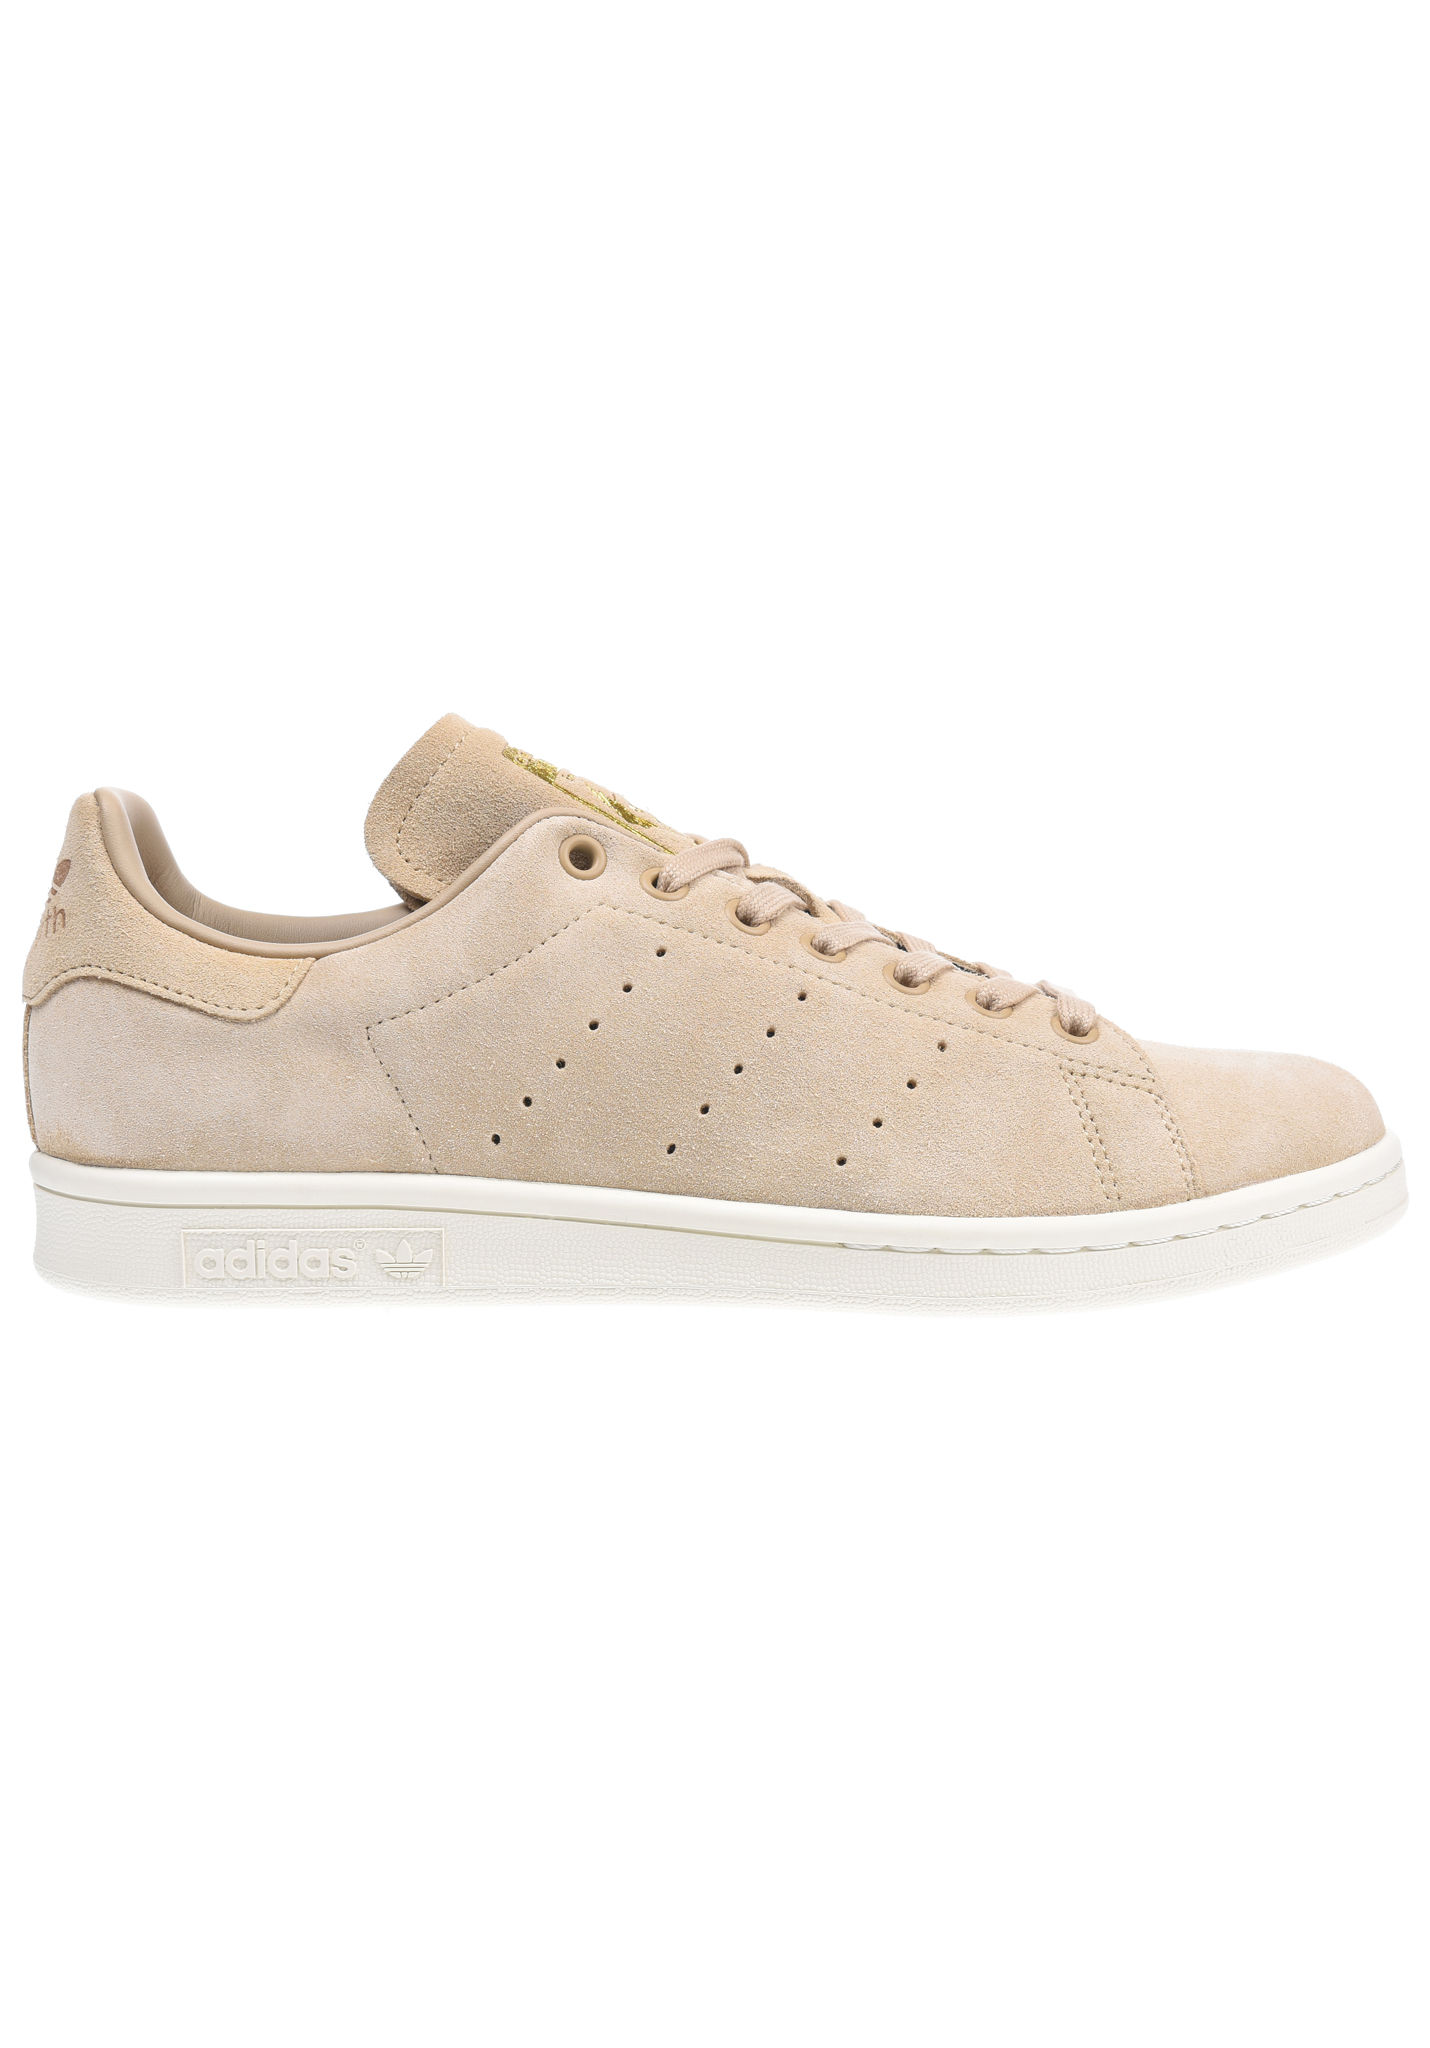 Stan Smith Beige Adidas